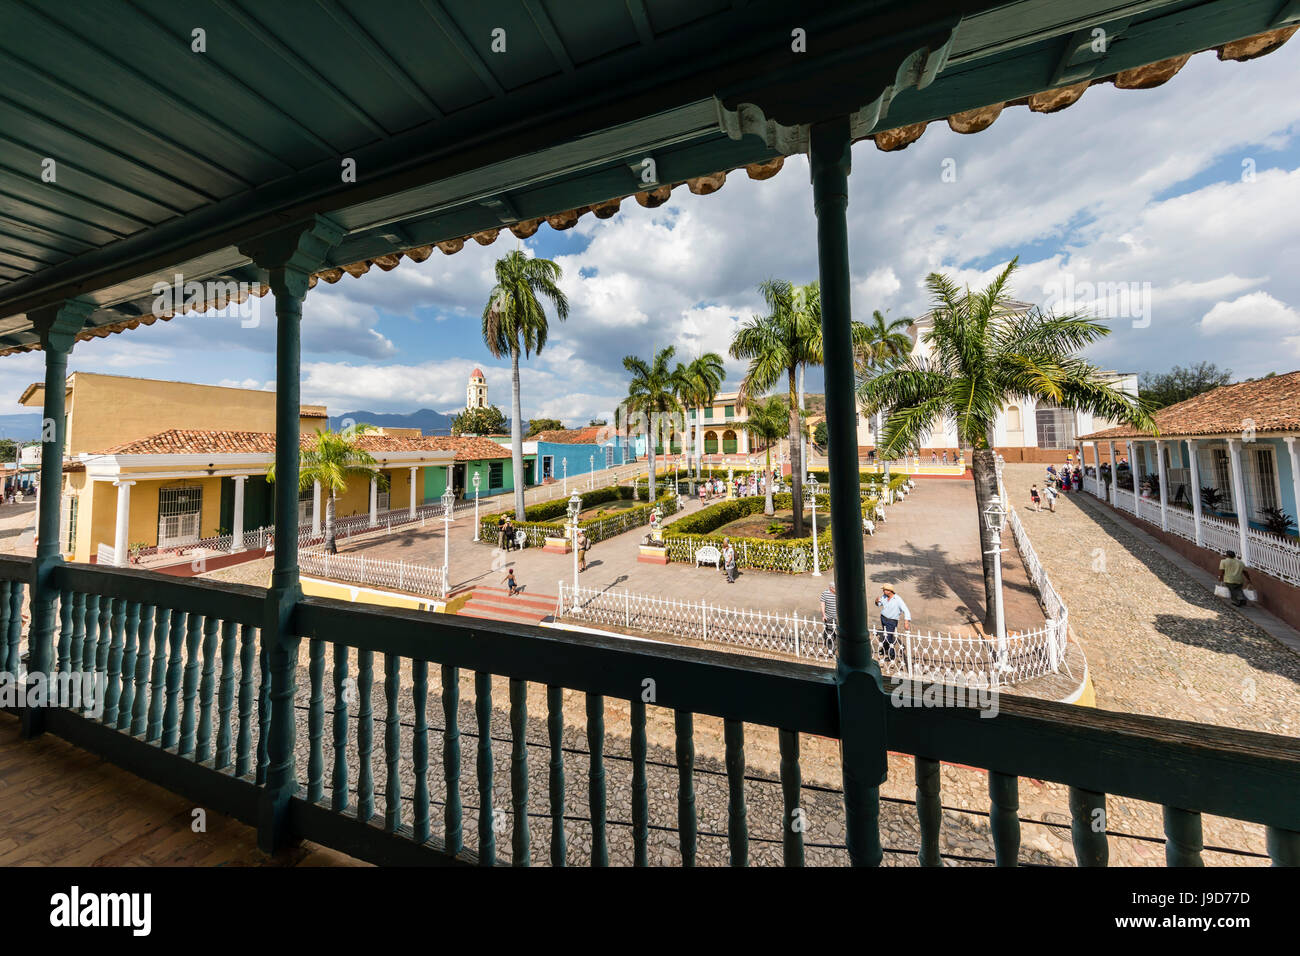 A view of the Plaza Mayor, Trinidad, UNESCO World Heritage Site, Cuba, West Indies, Caribbean, Central America Stock Photo